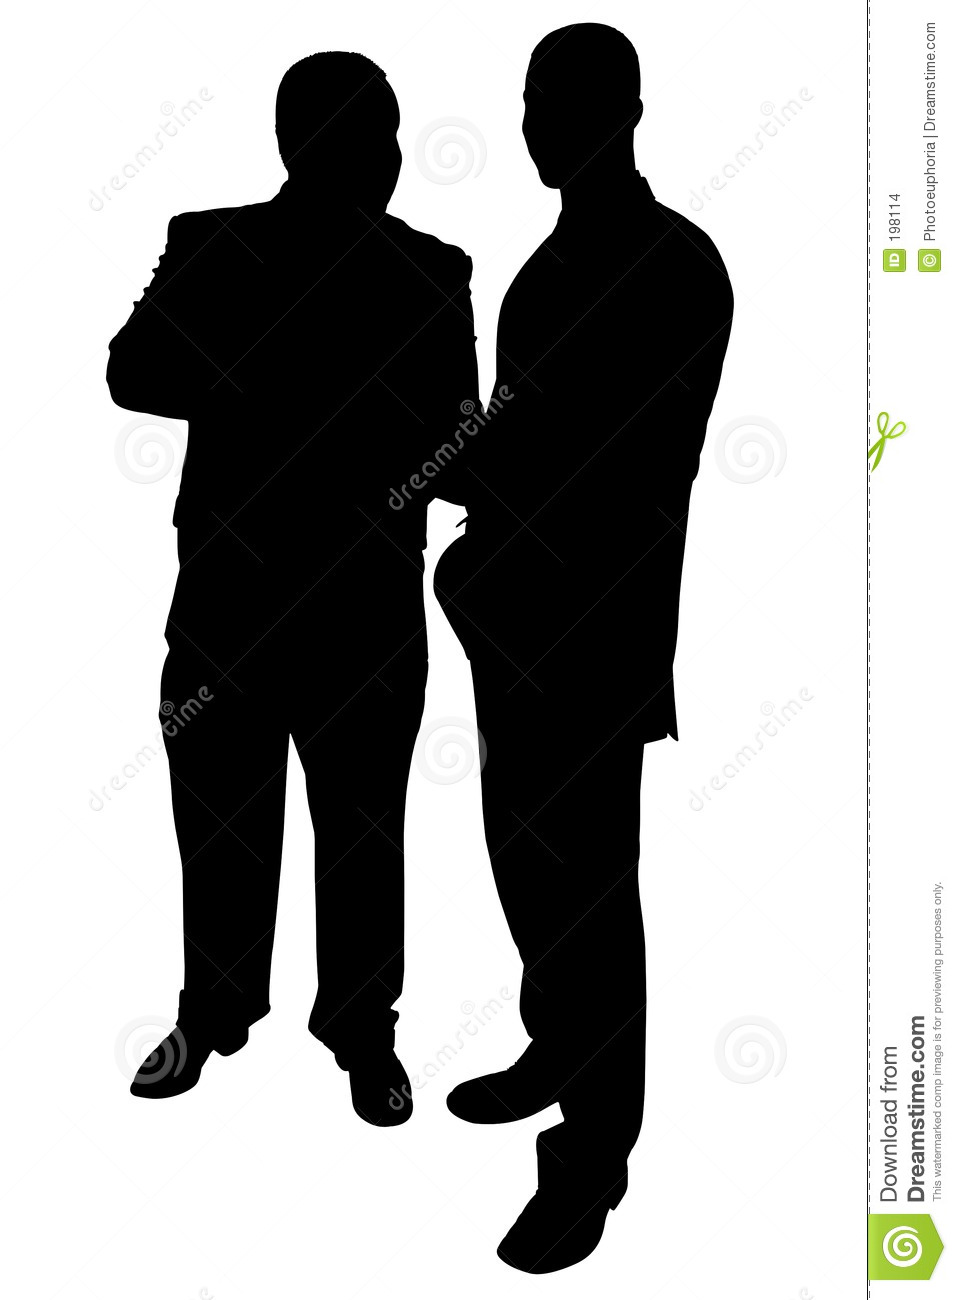 Silhouette With Clipping Path Of Two Businessmen Talking Stock.